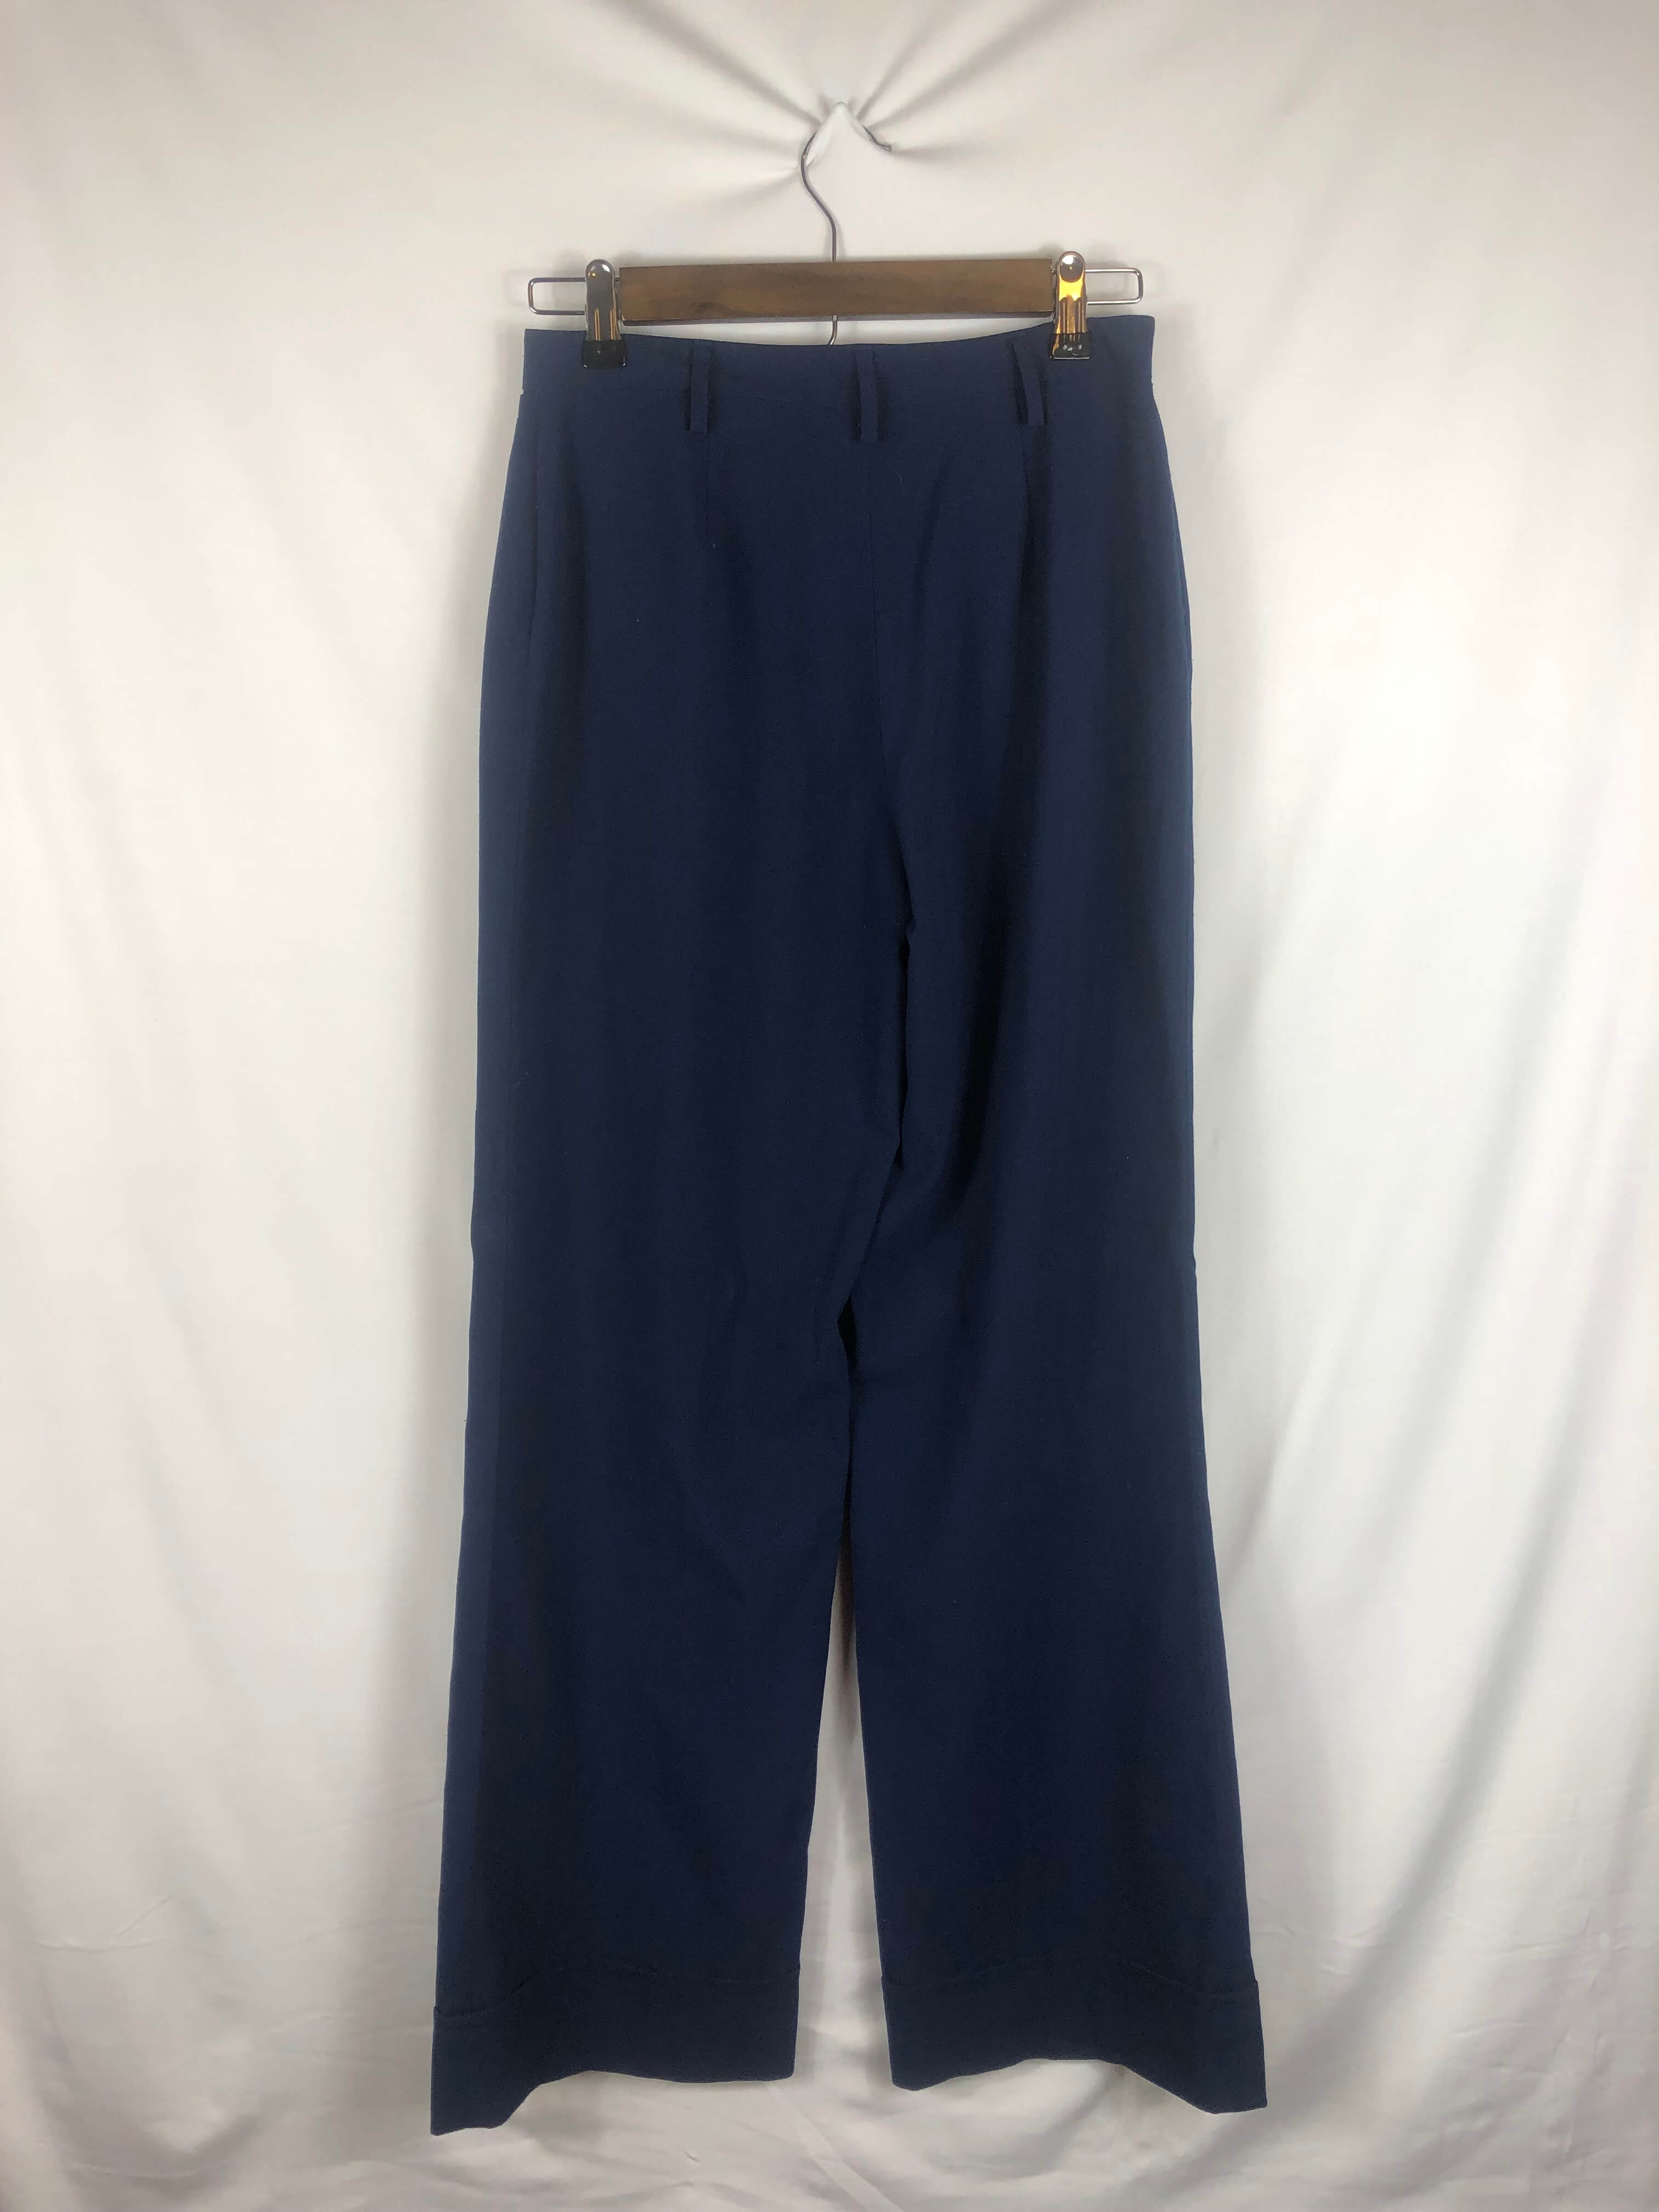 Wide Leg High-Waisted Navy Pant - Size: Vintage 4 *Modern Best Fit: 0